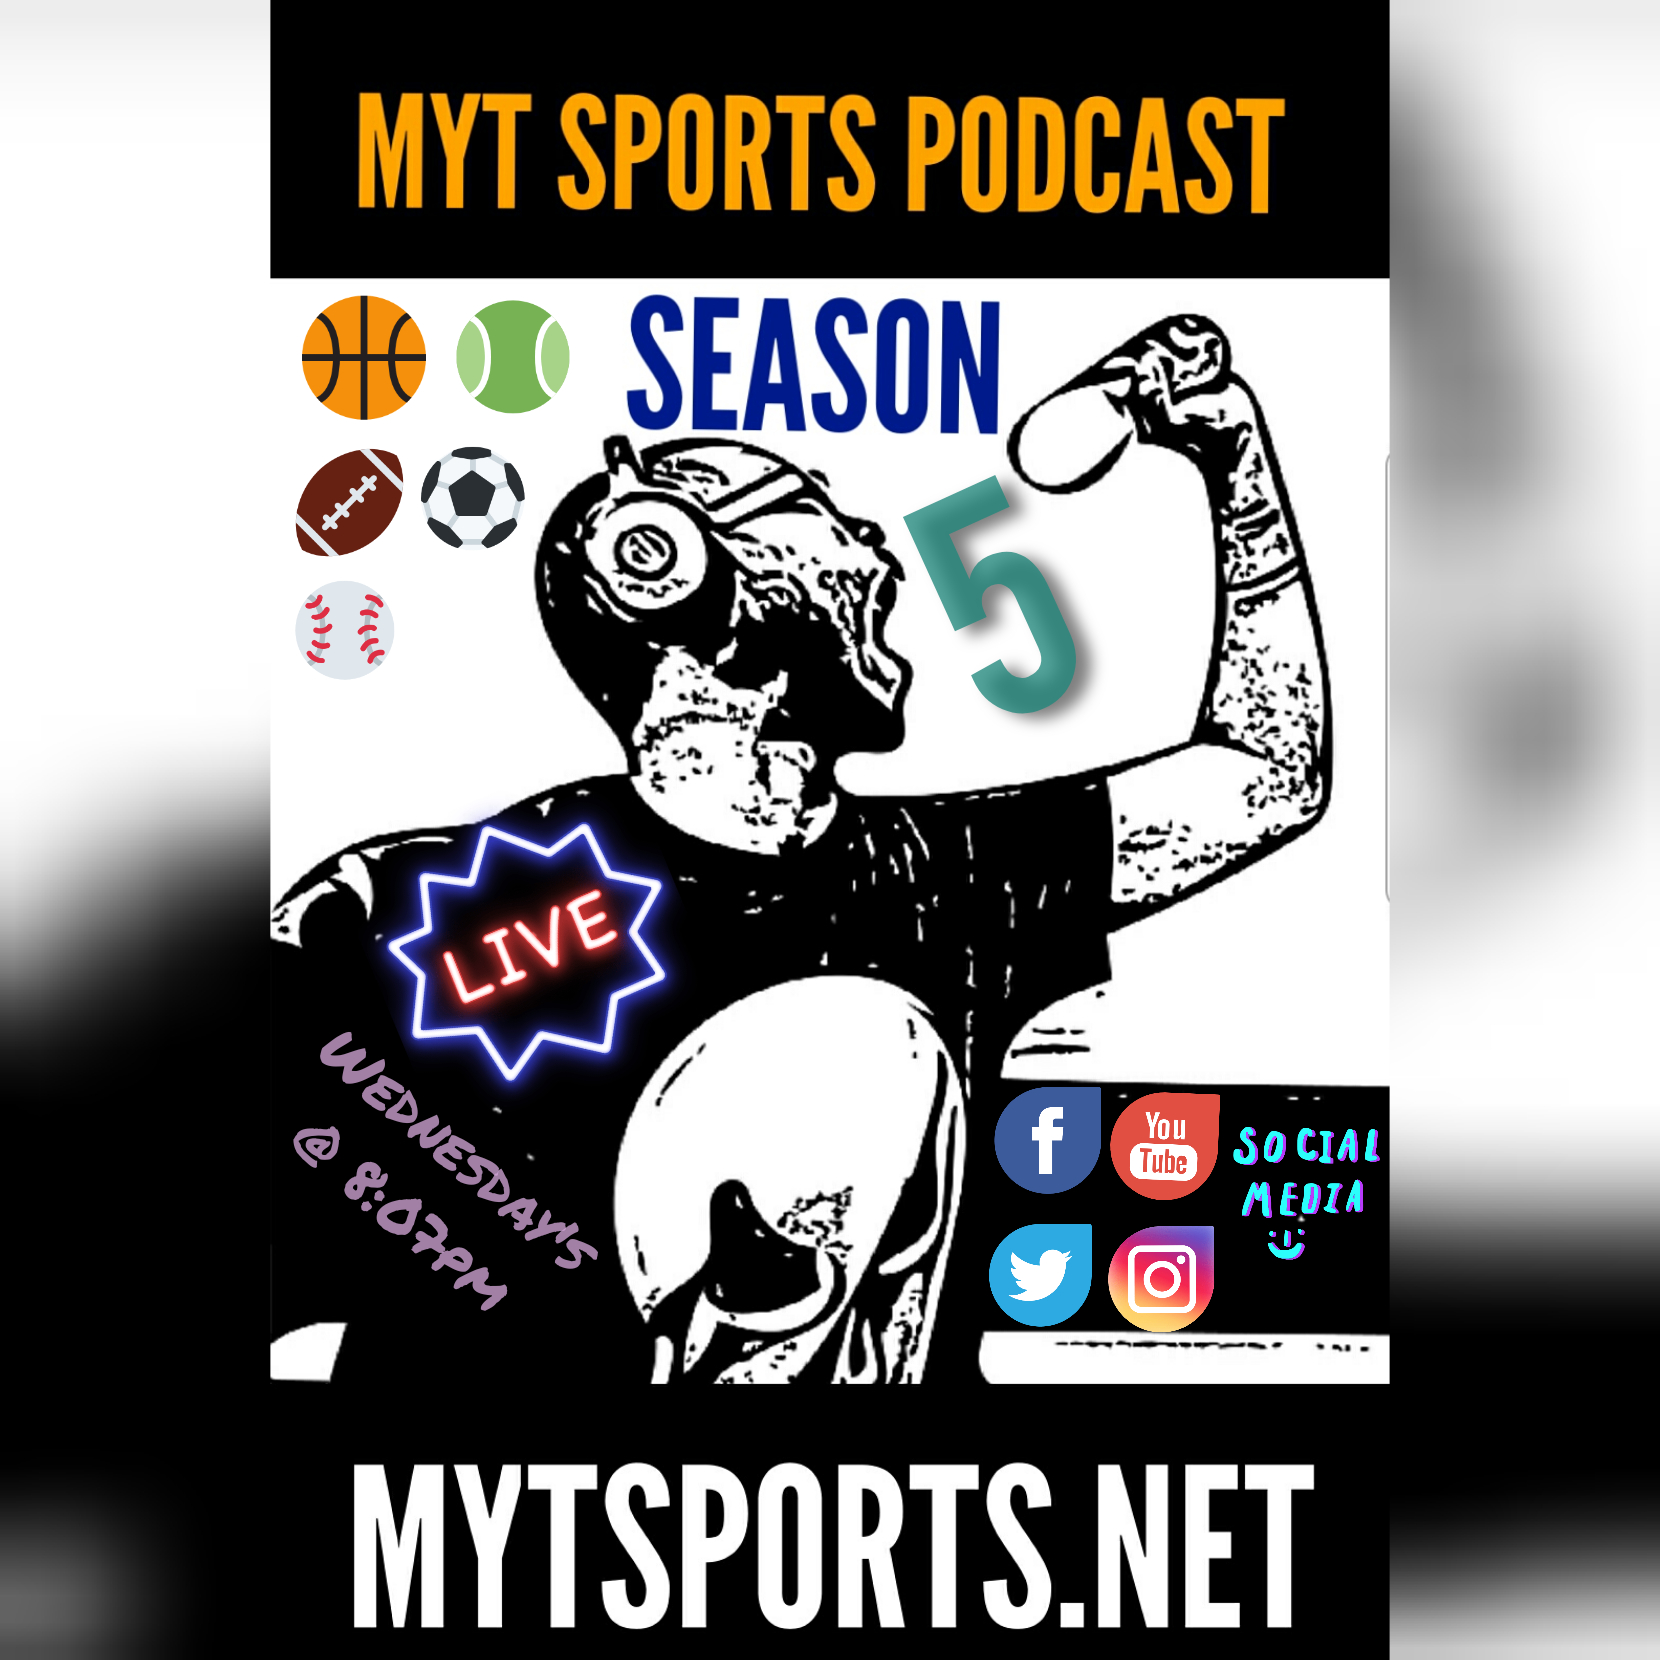 The MyT Sports Podcast